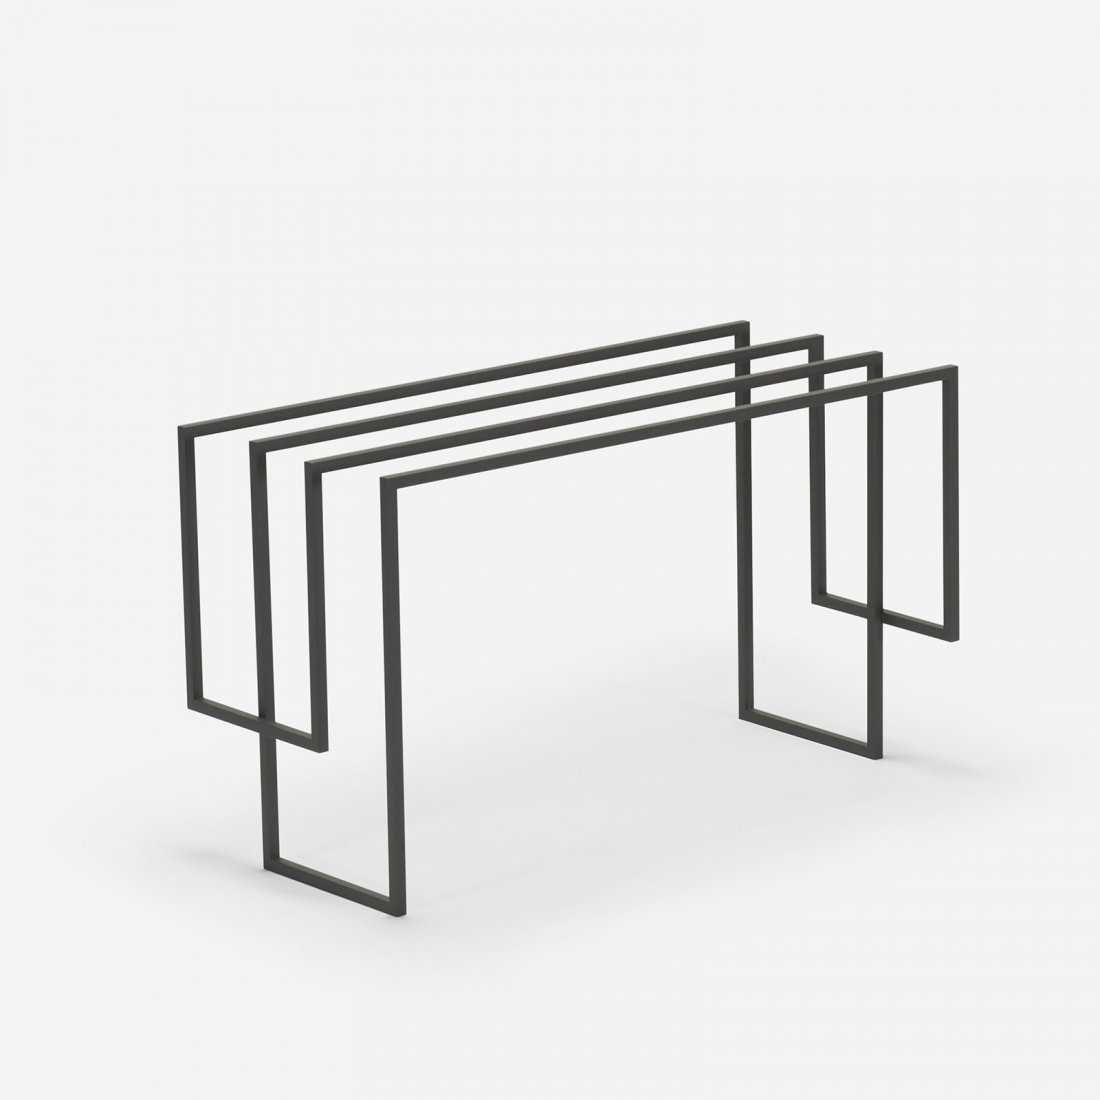 Nendo, 5200mm stool from the Thin Black Lines series